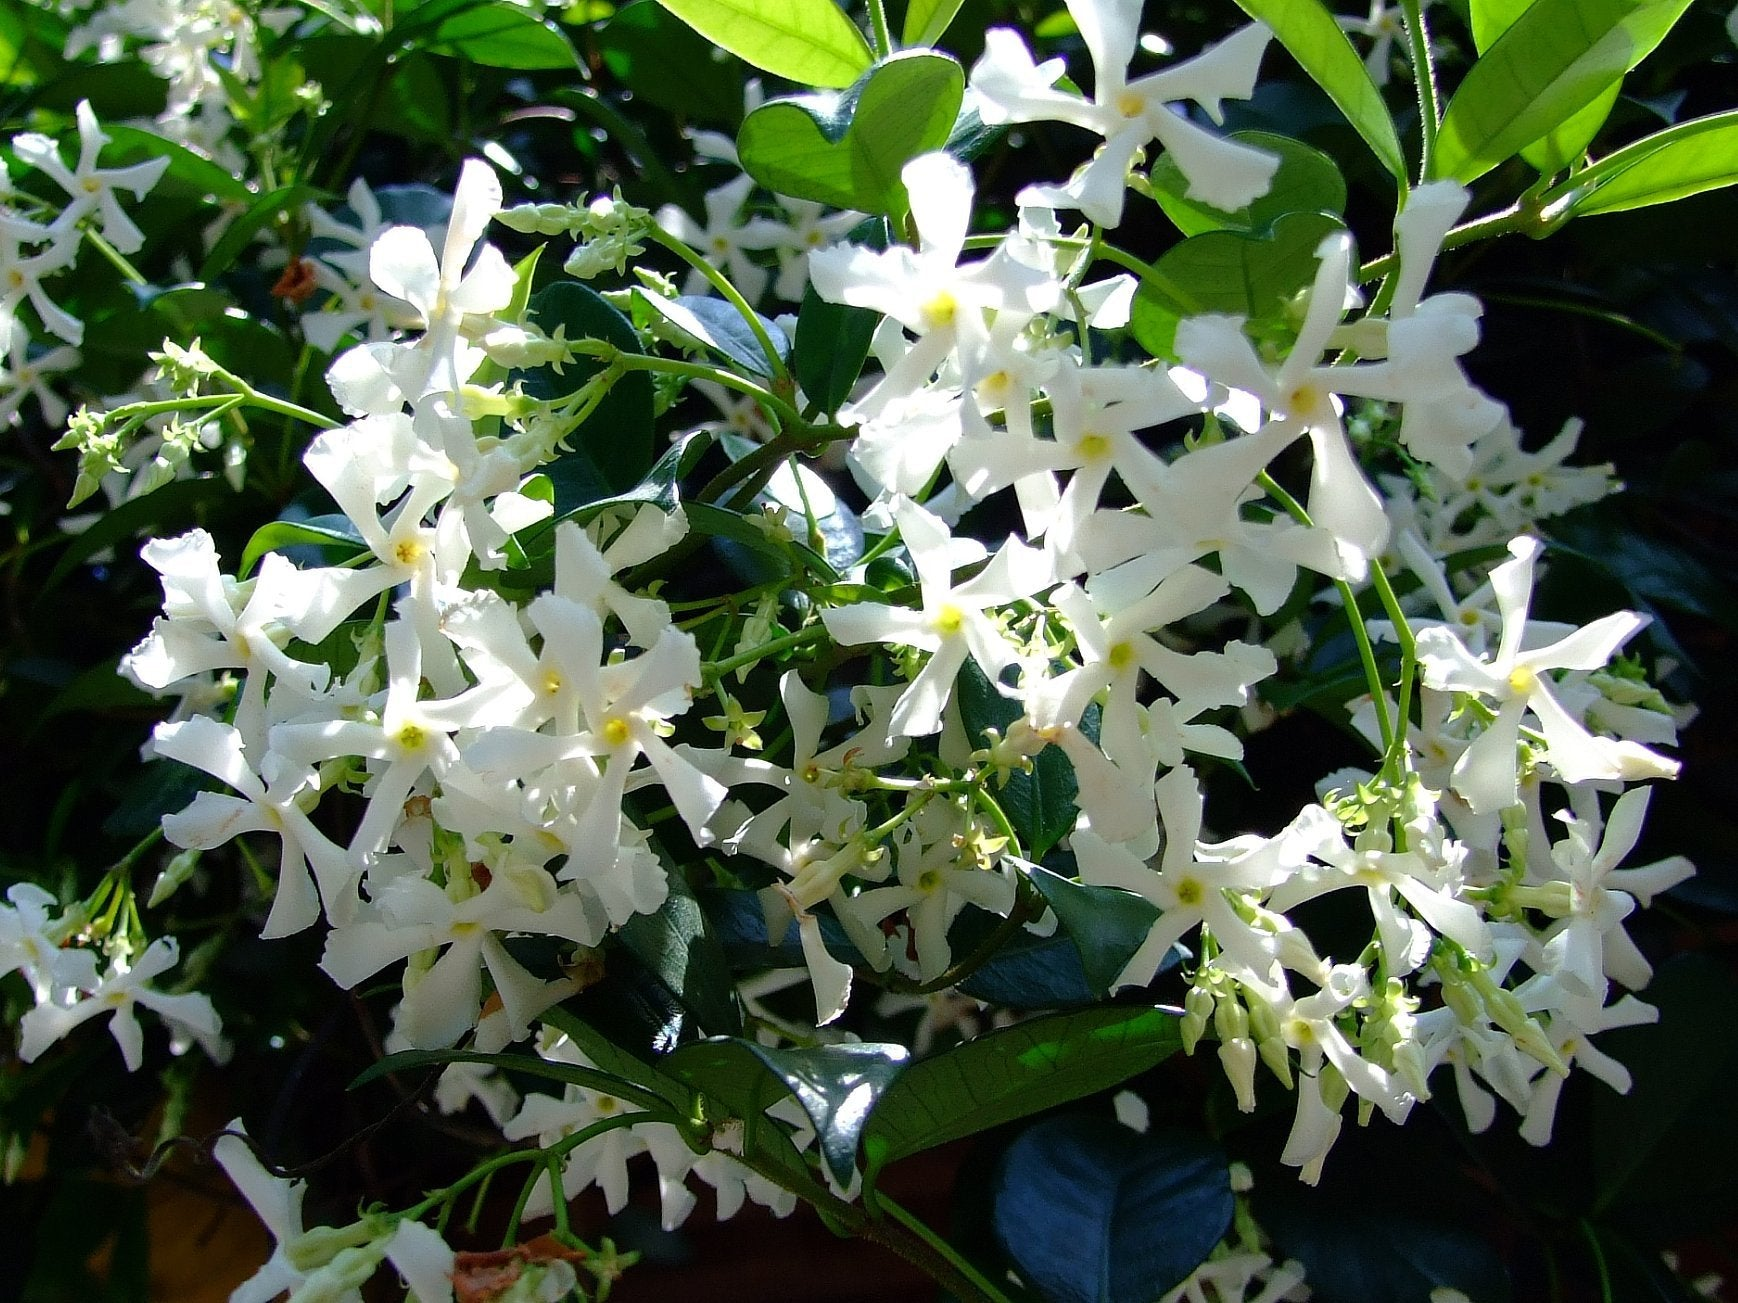 Buy star Jasmine scented white flowers online